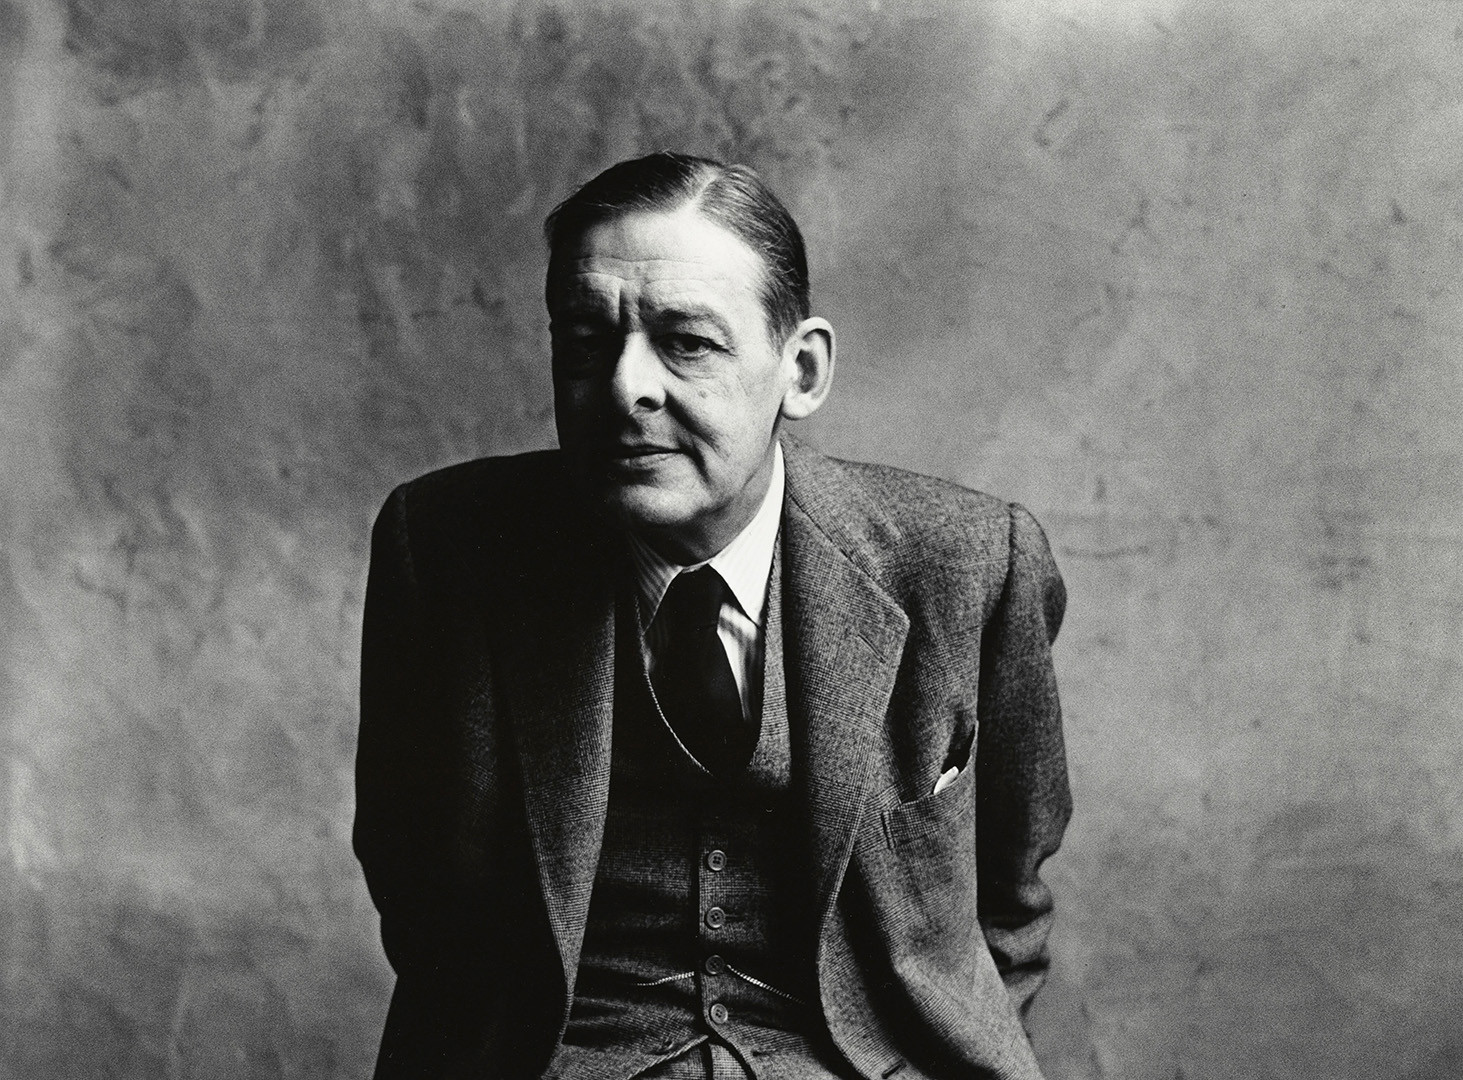 Irving Penn, T.S. Eliot (A), London, 1950